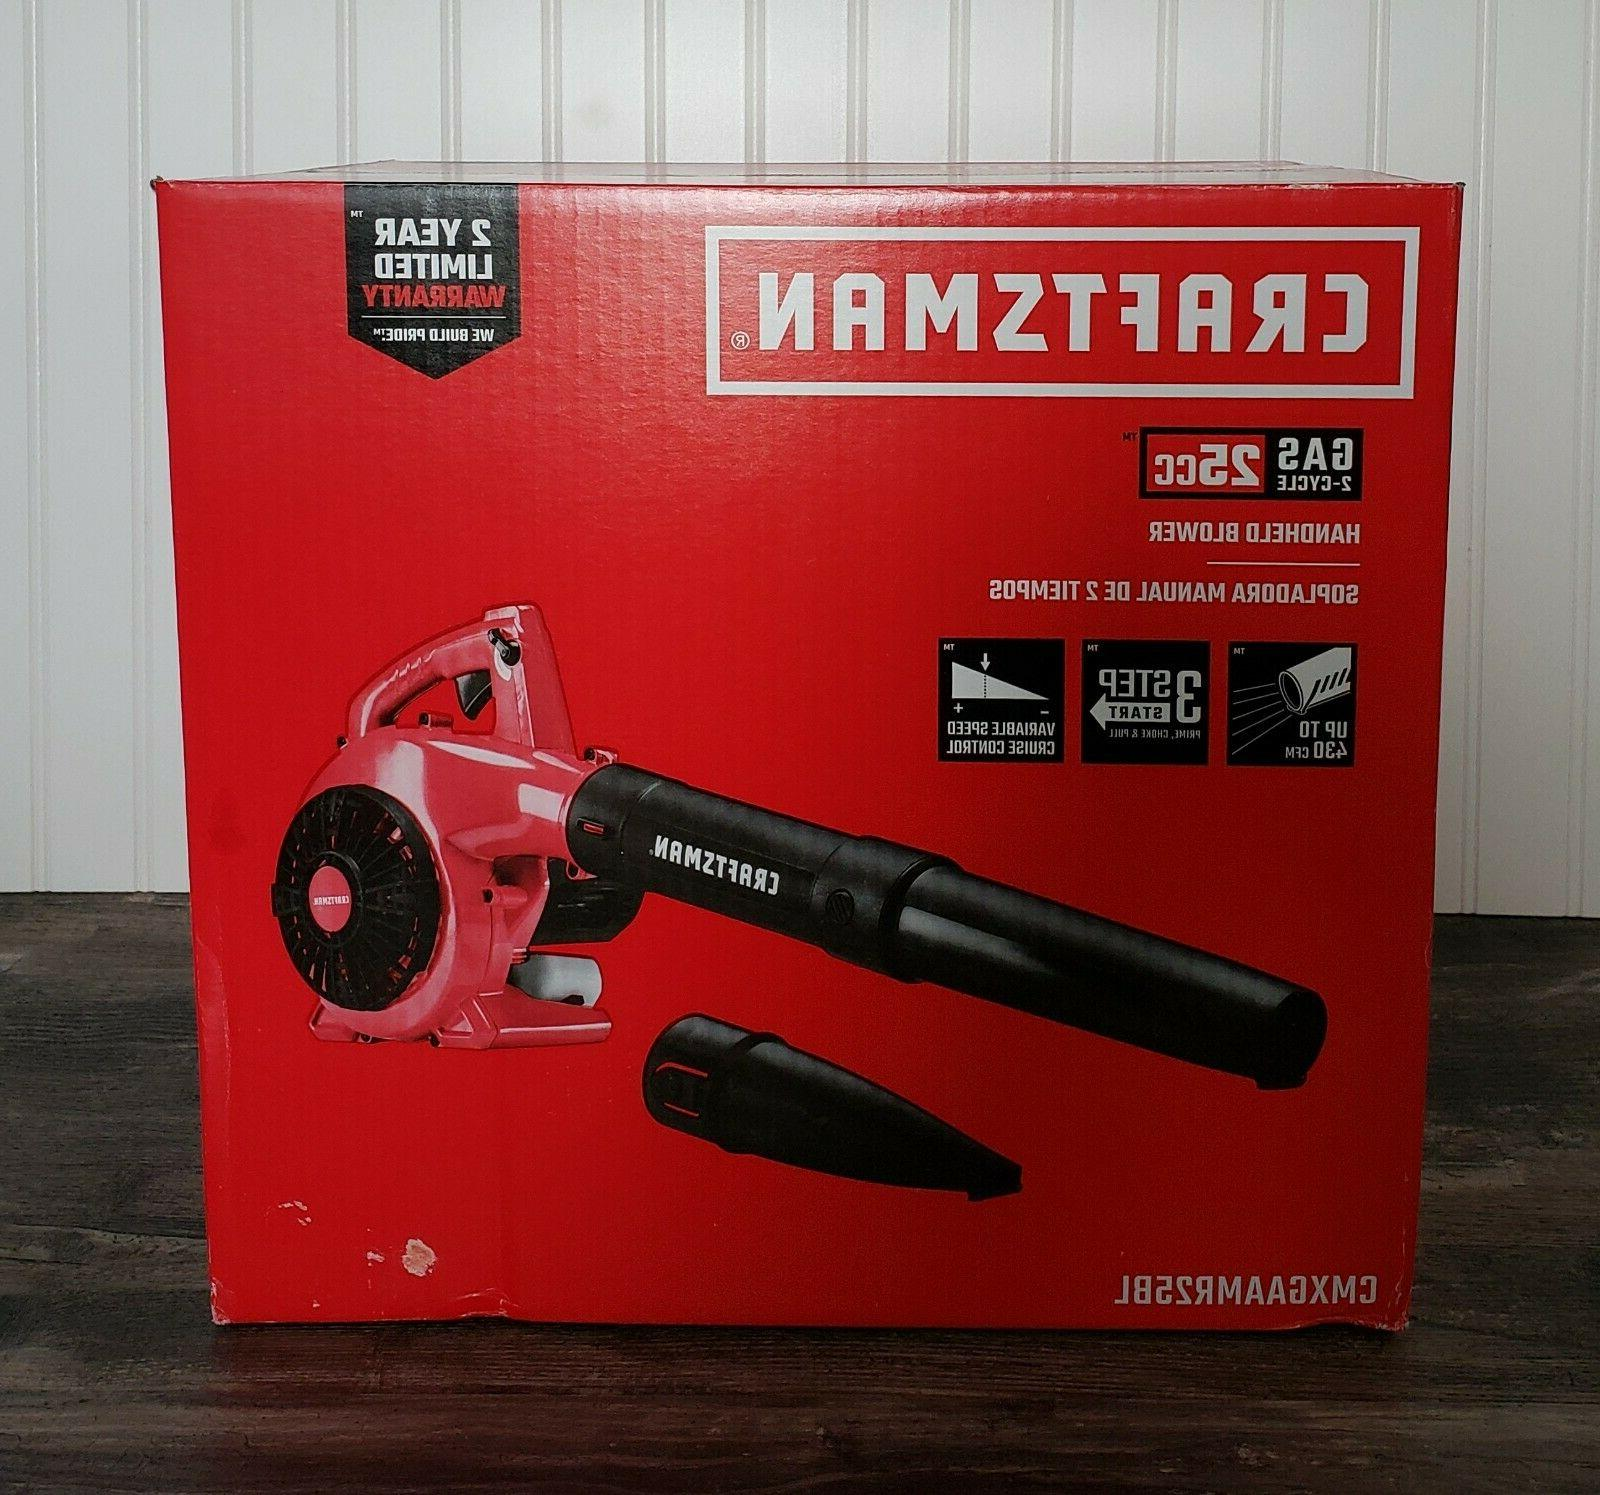 CRAFTSMAN Handheld Gas Leaf Blower B210 2-Cycle 200-MPH Easy Pull